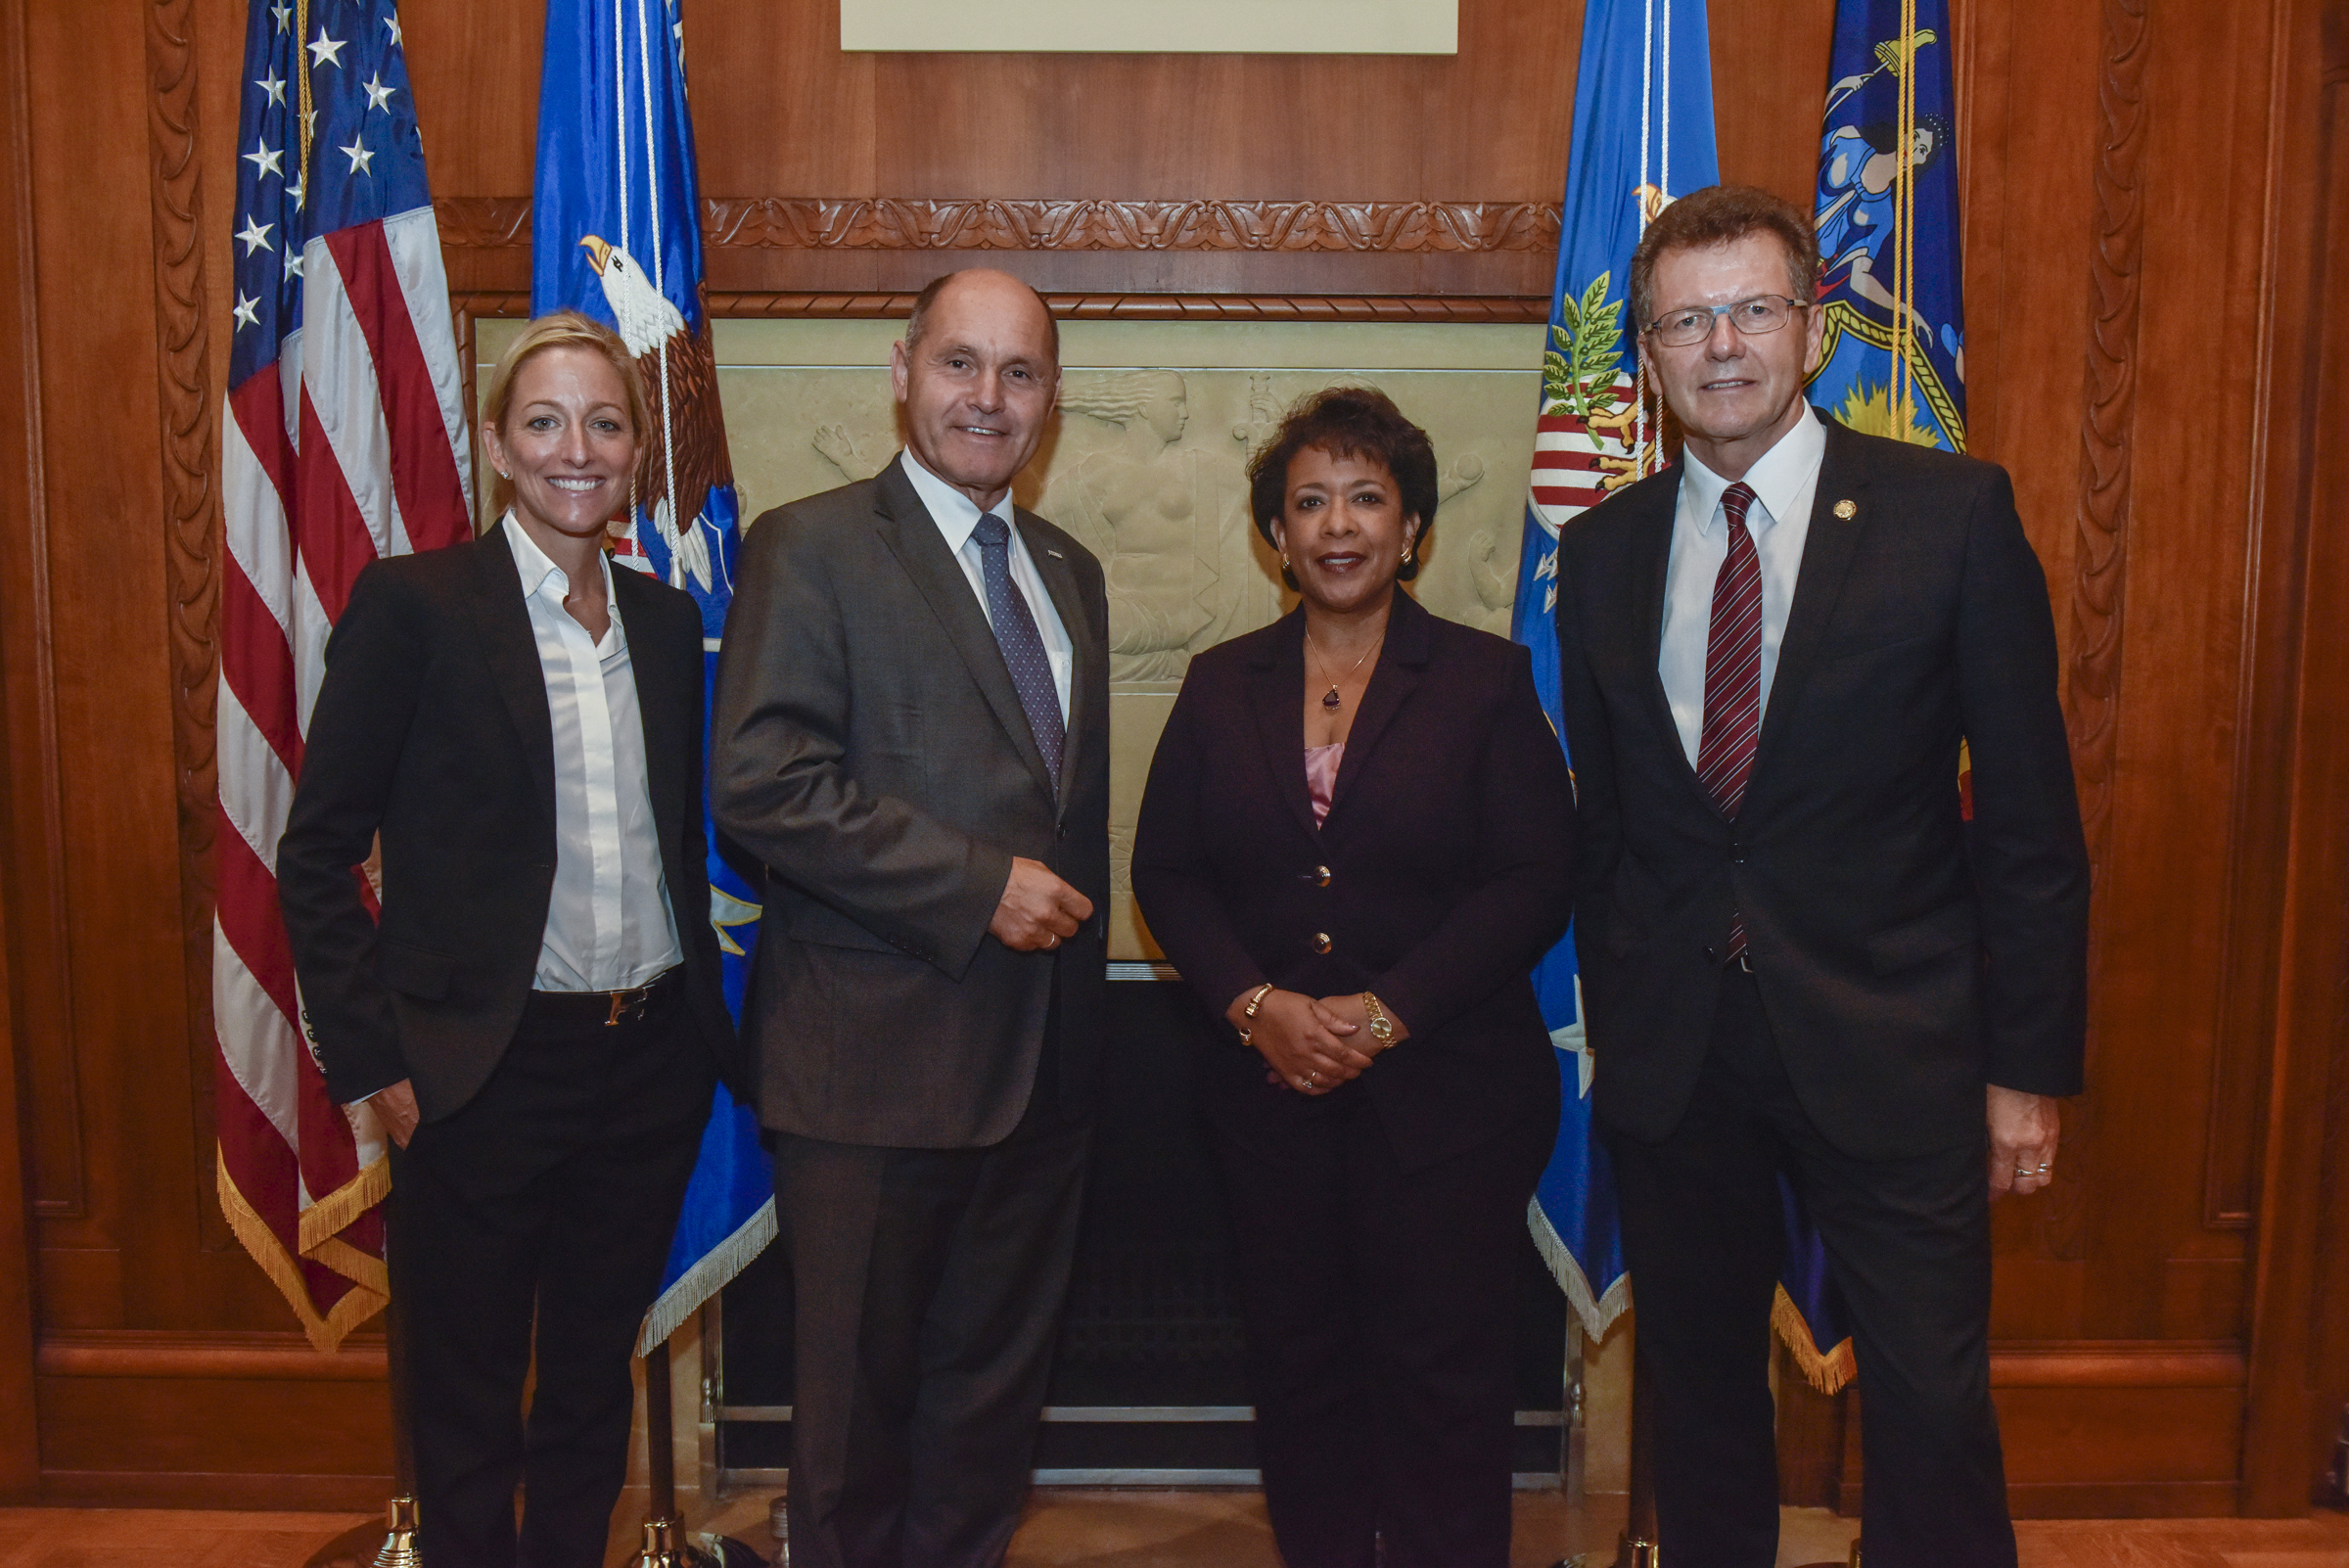 From left to right: U.S. Ambassador to Austria, Alexa Wesner, Interior Minister Wolfgang Sobotka, Attorney General Loretta Lynch, and Ambassador Wolfgang Waldner. Photo: Attorney General's Office